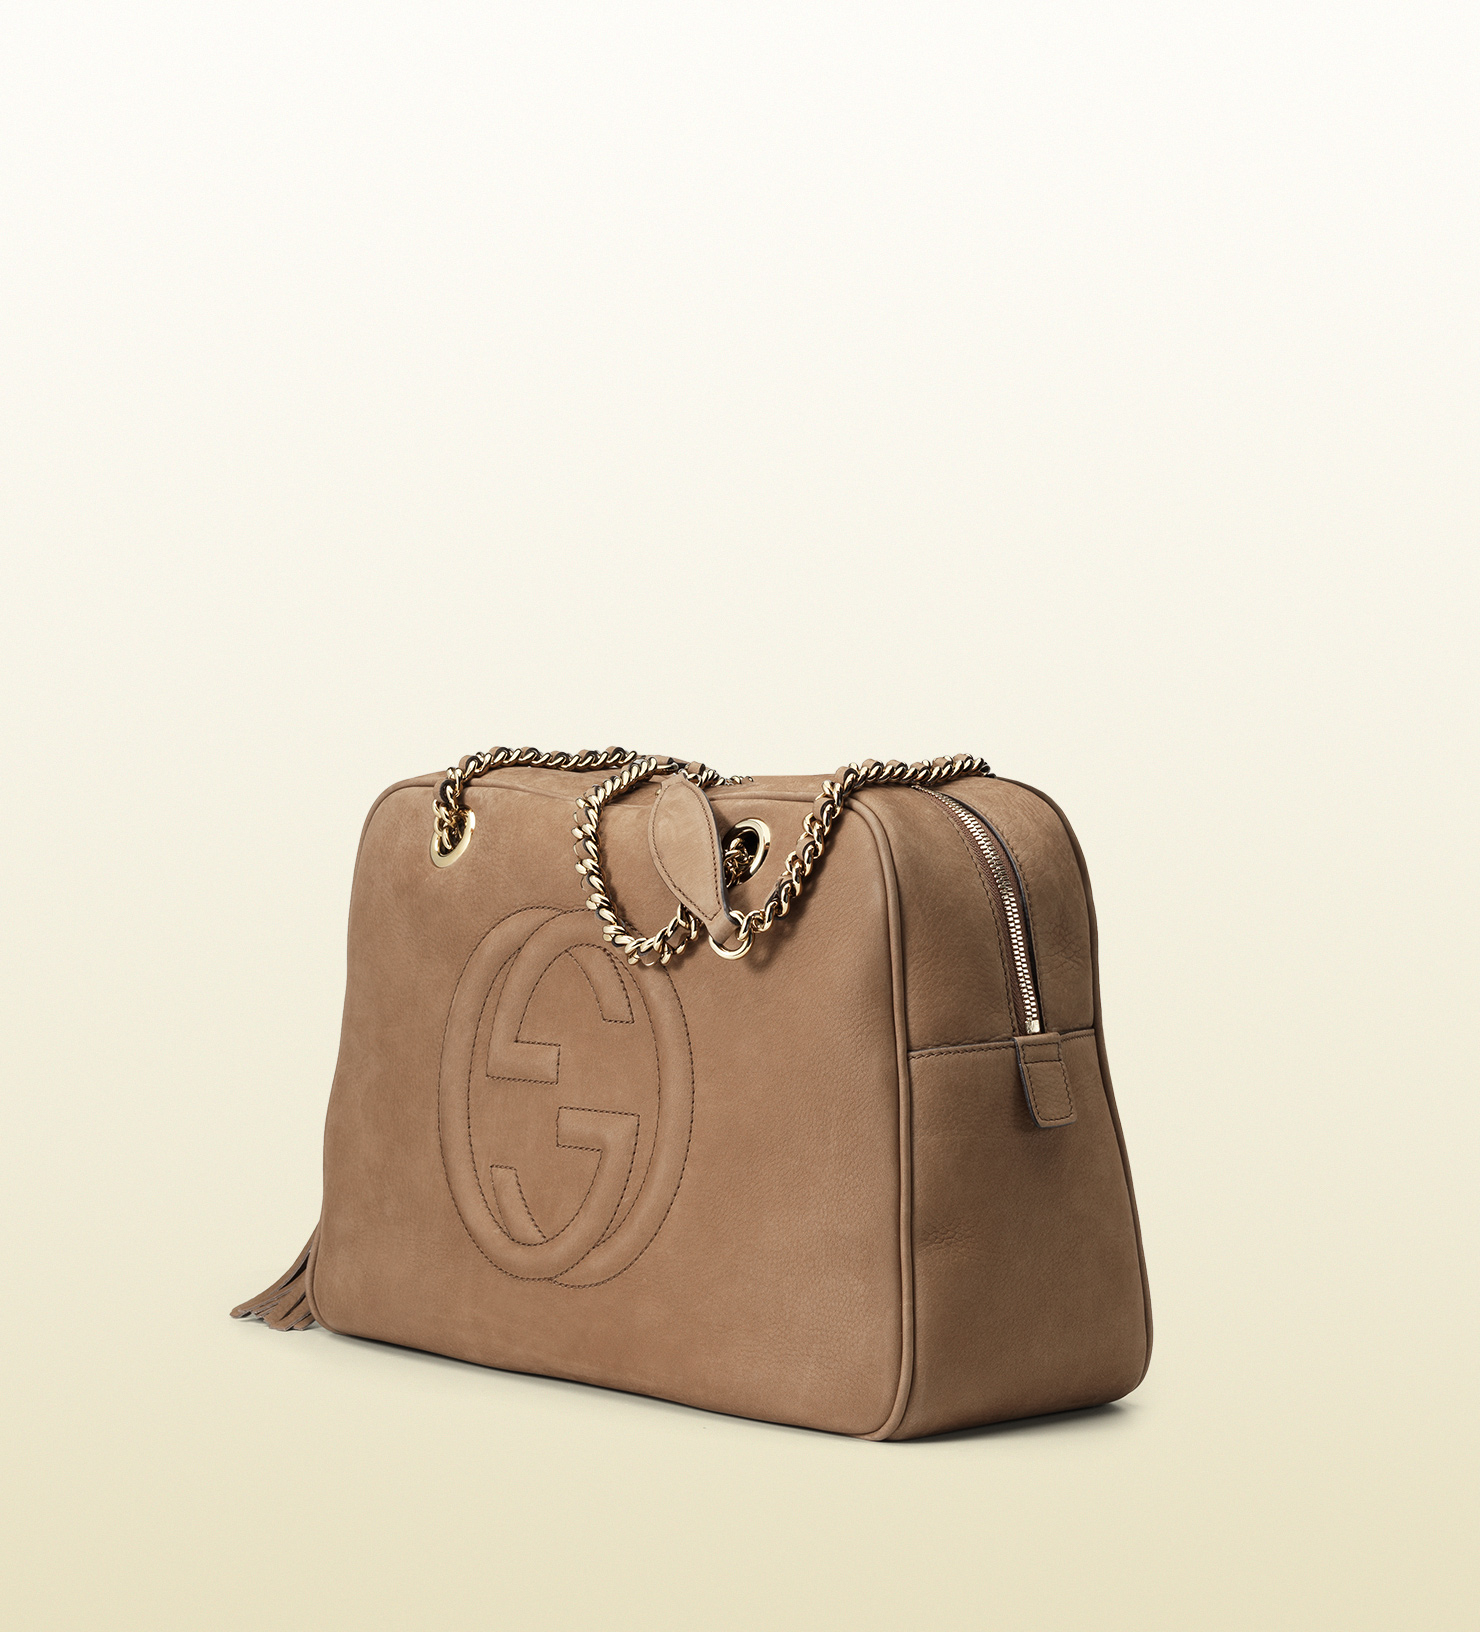 de3ad9bac1386 Lyst - Gucci Soho Nubuck Leather Chain Shoulder Bag in Brown